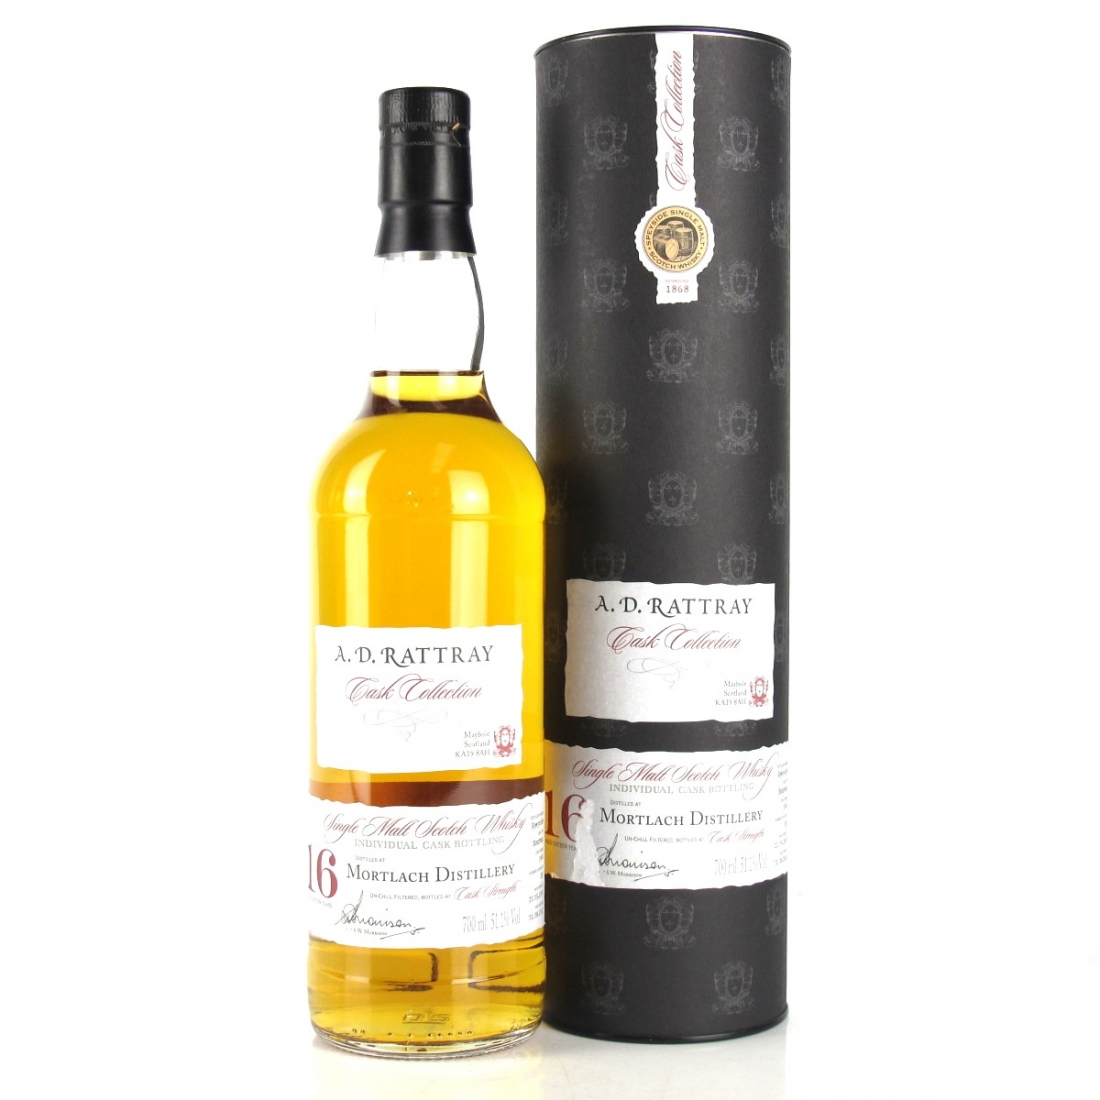 Mortlach 1995 A.D. Rattray 16 Year Old